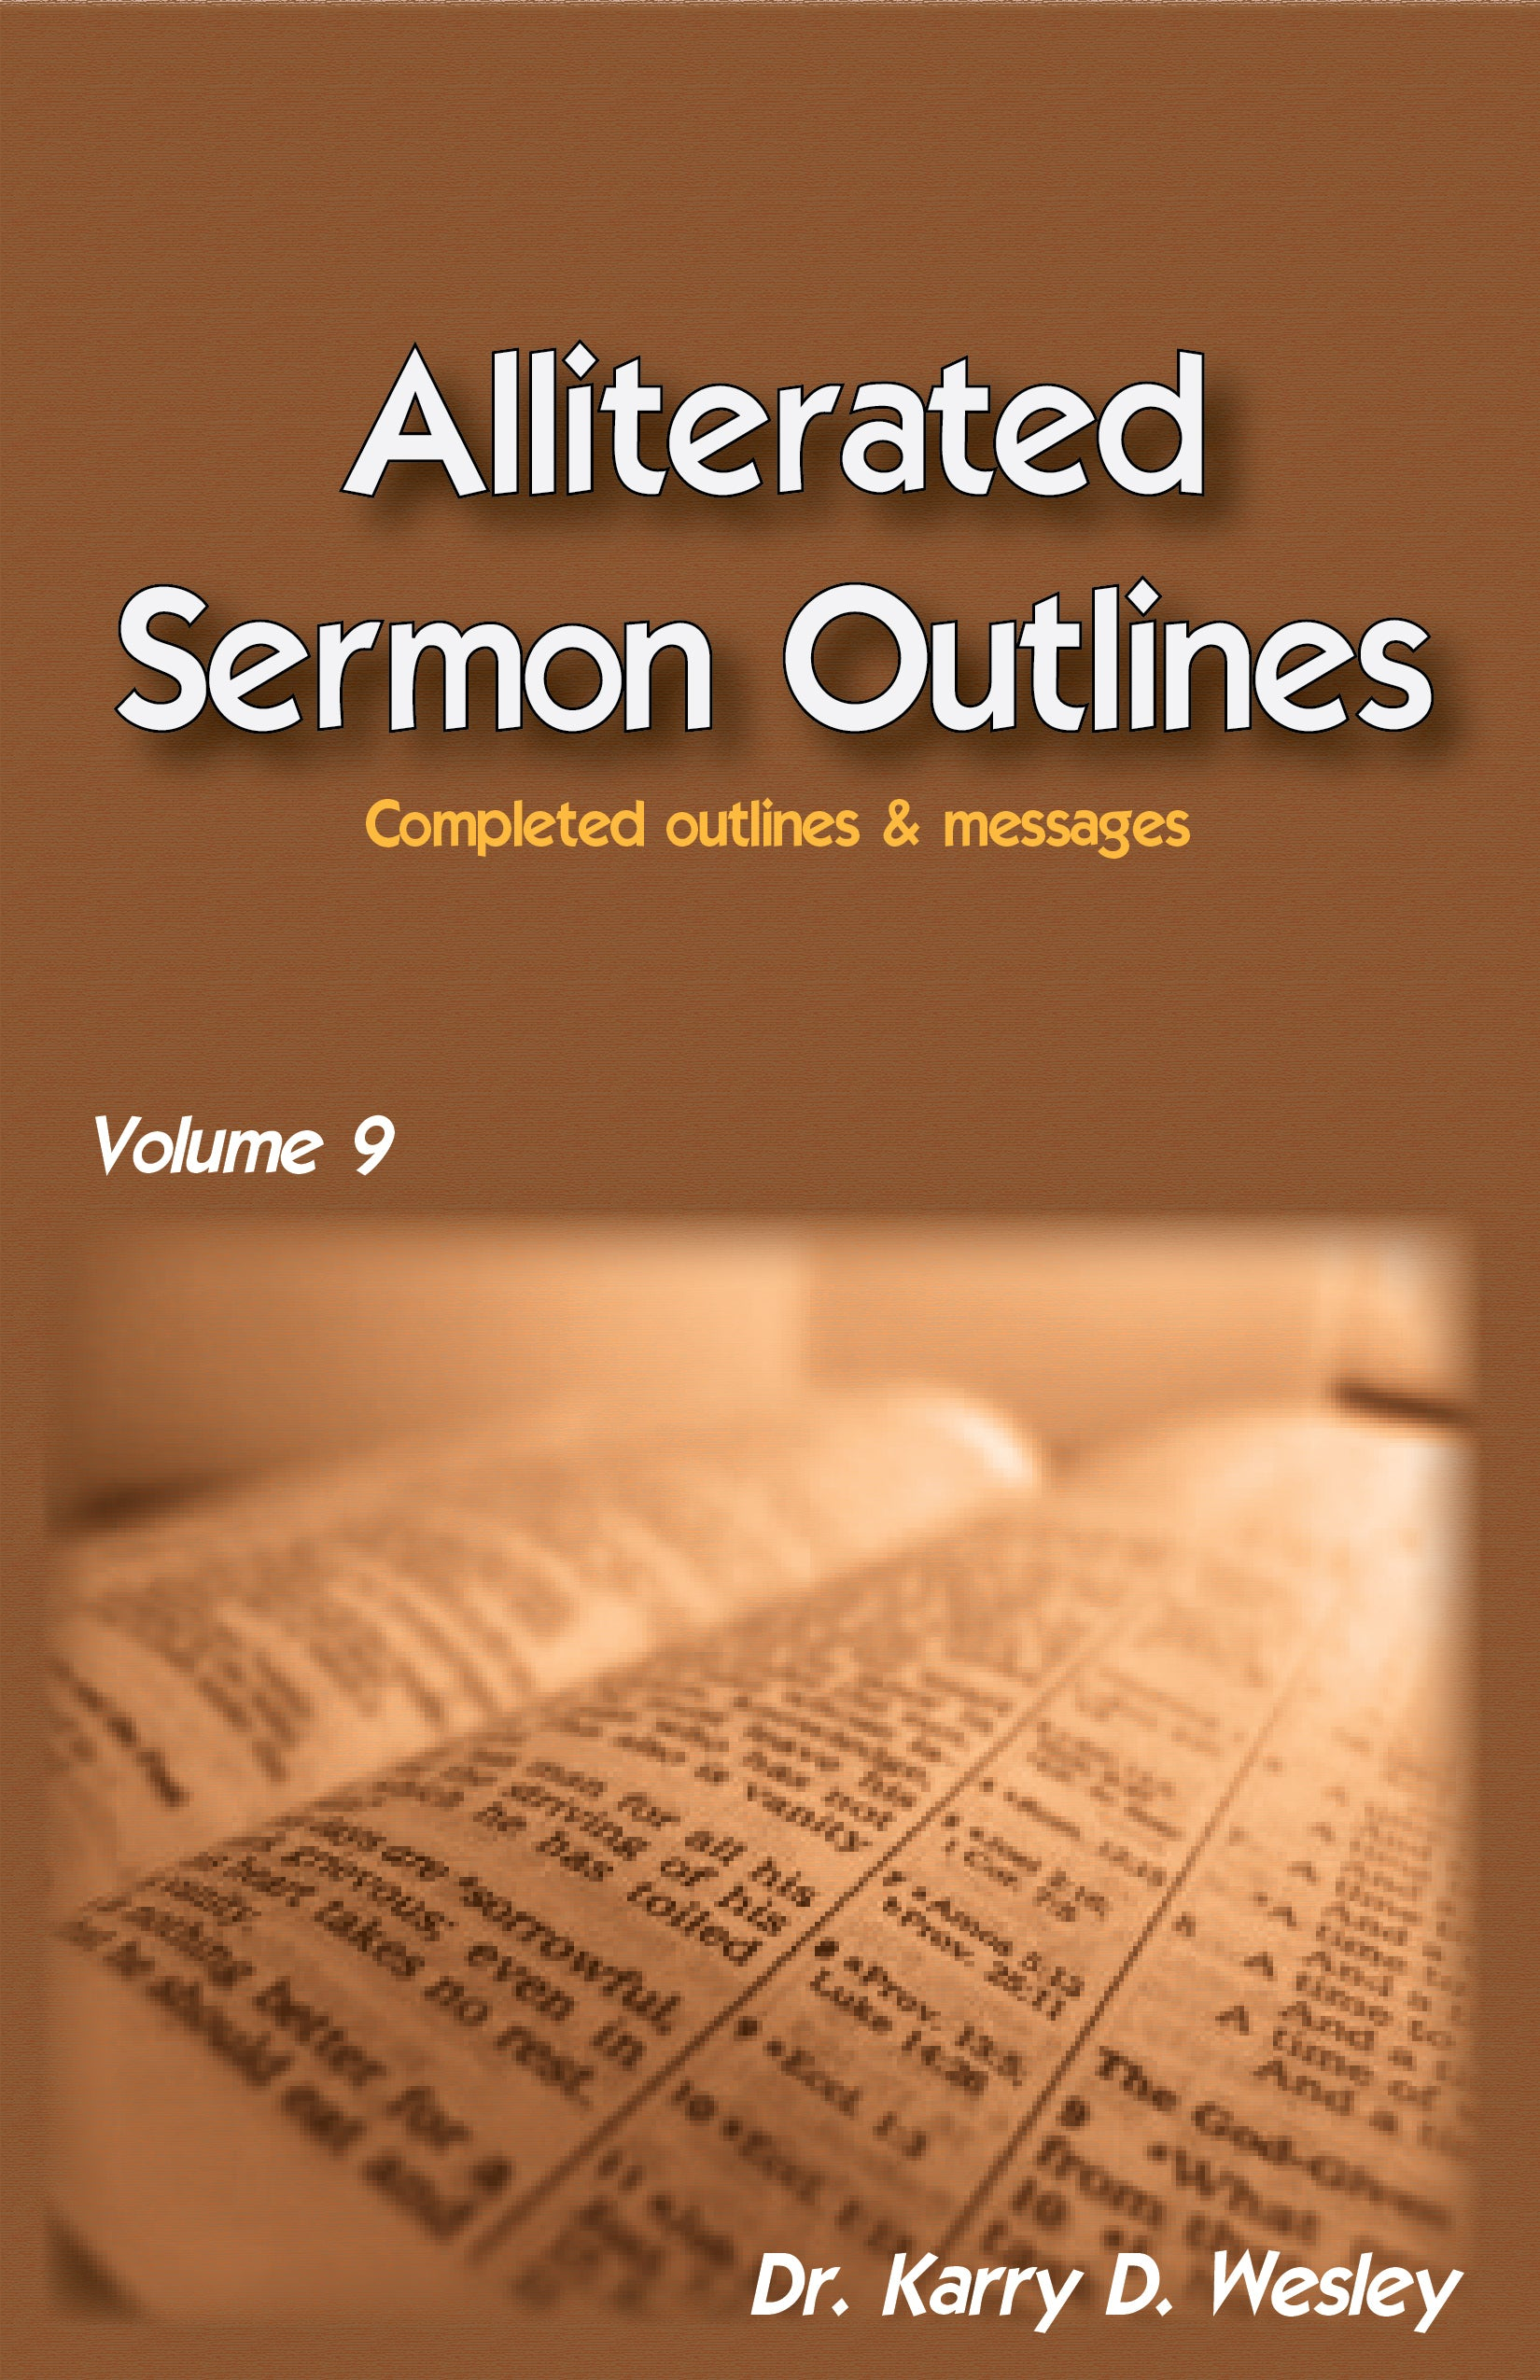 Alliterated Sermons - Volume 9